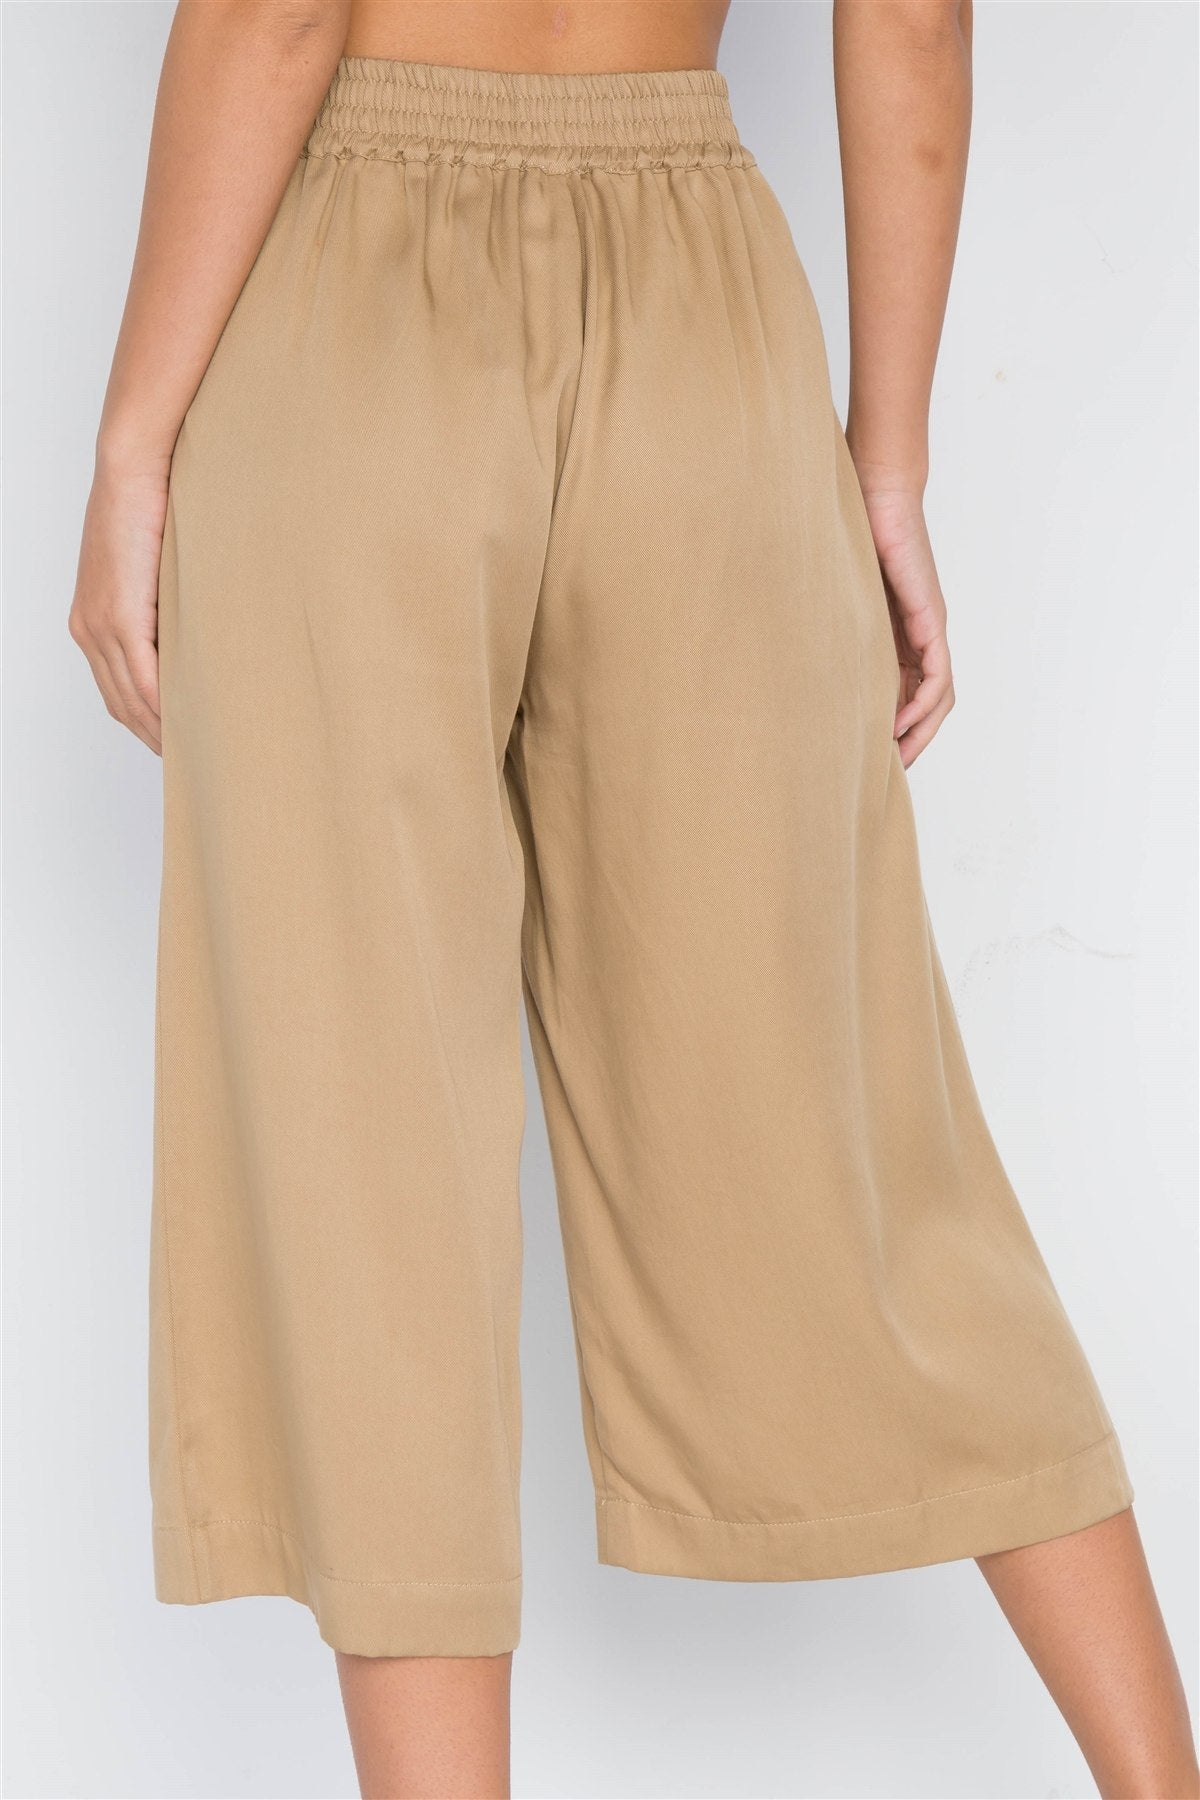 Khaki High Waist Cropped Wide Leg Pants - Miranda's Paparazzi Style